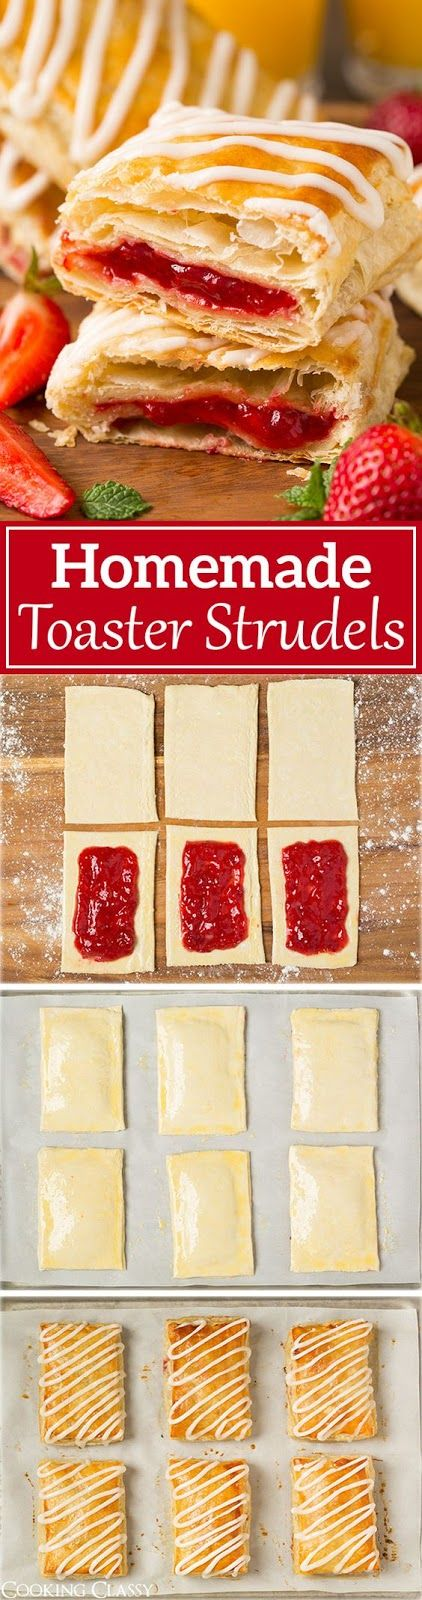 Homemade Toaster Strudels | Best Cooking Recipes